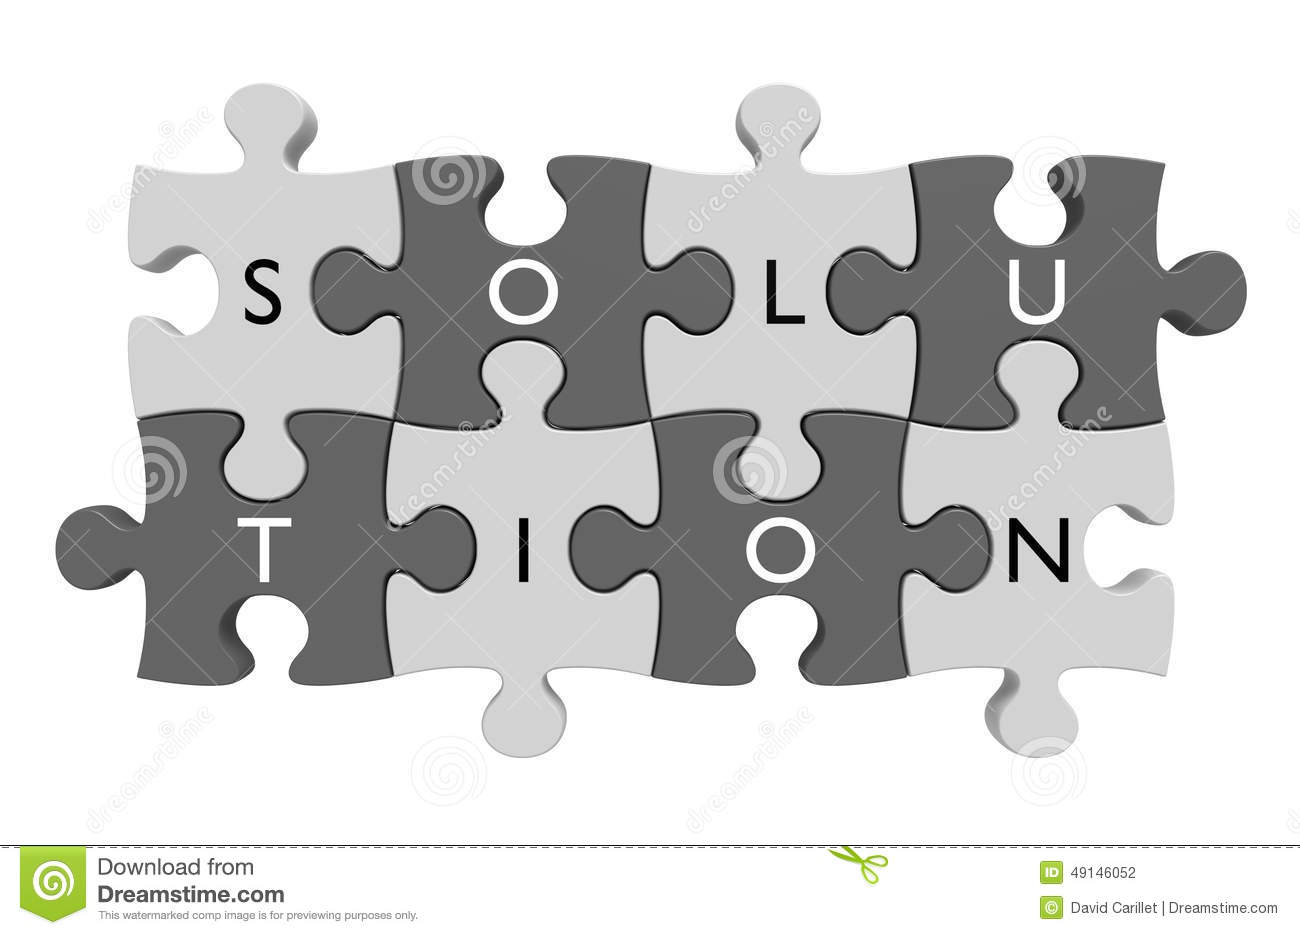 Parts Of A Puzzle Connected Together With Letters Spelling Out The